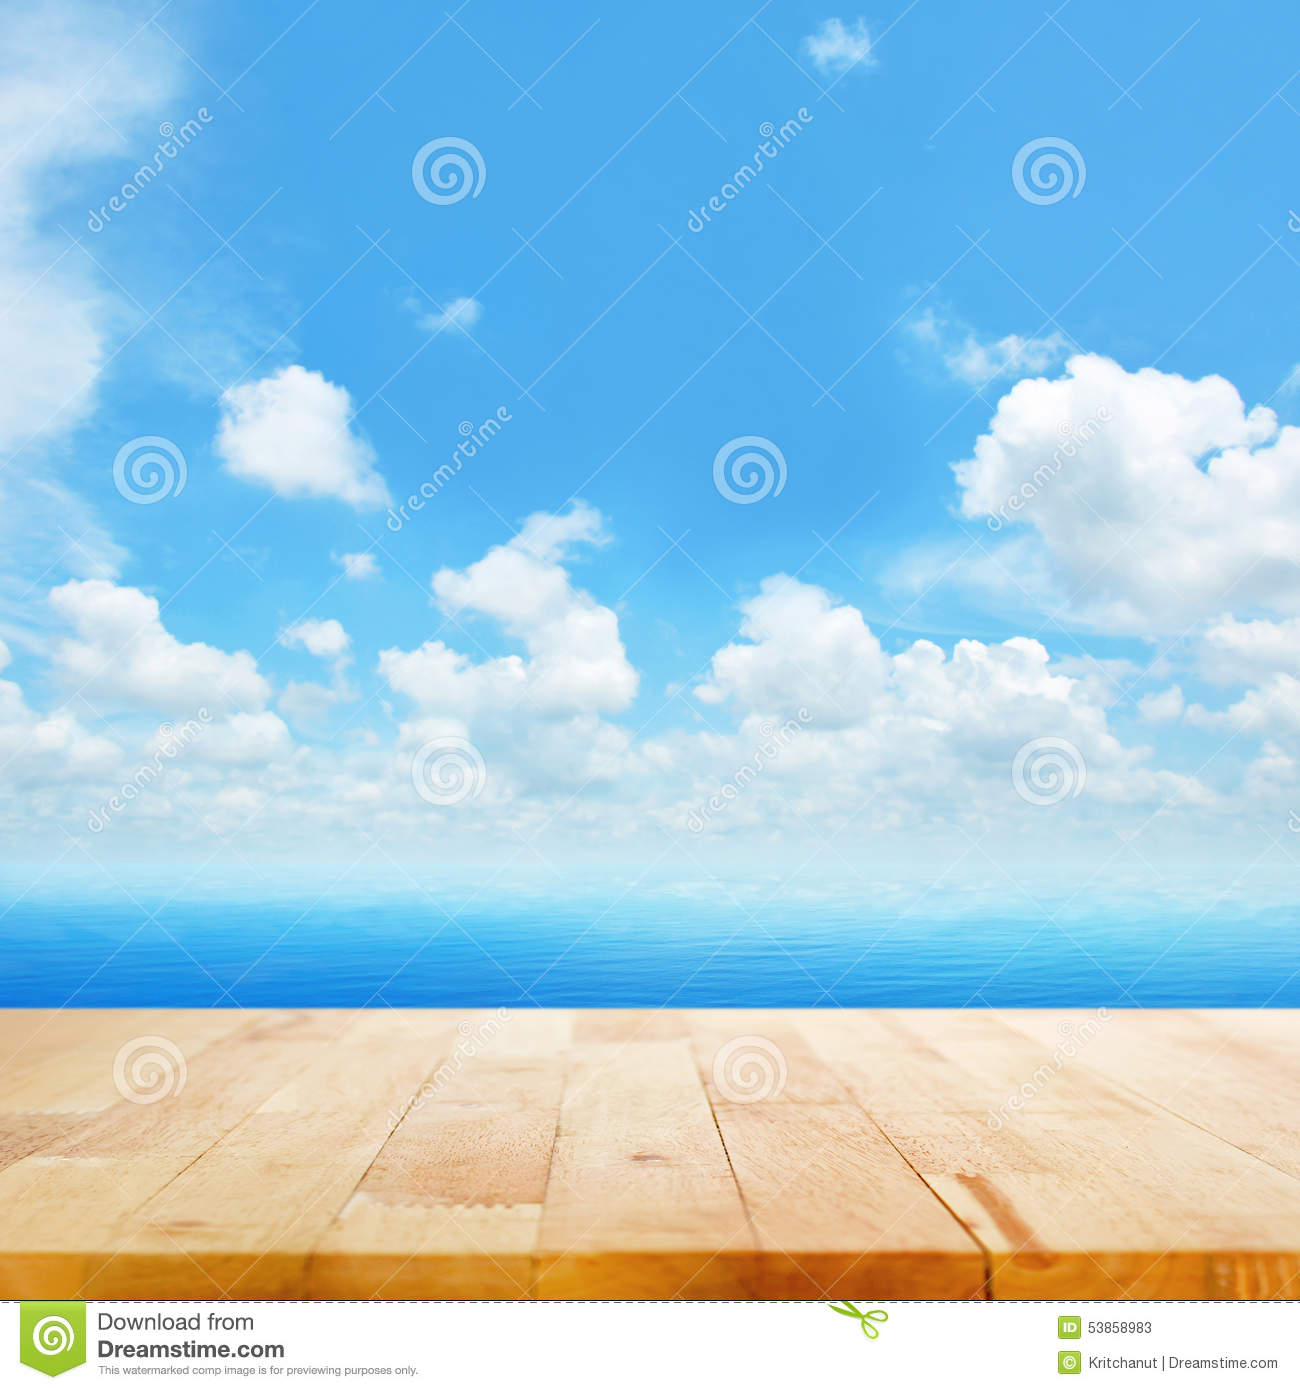 Wood table top on blue sea water and bright summer sky background